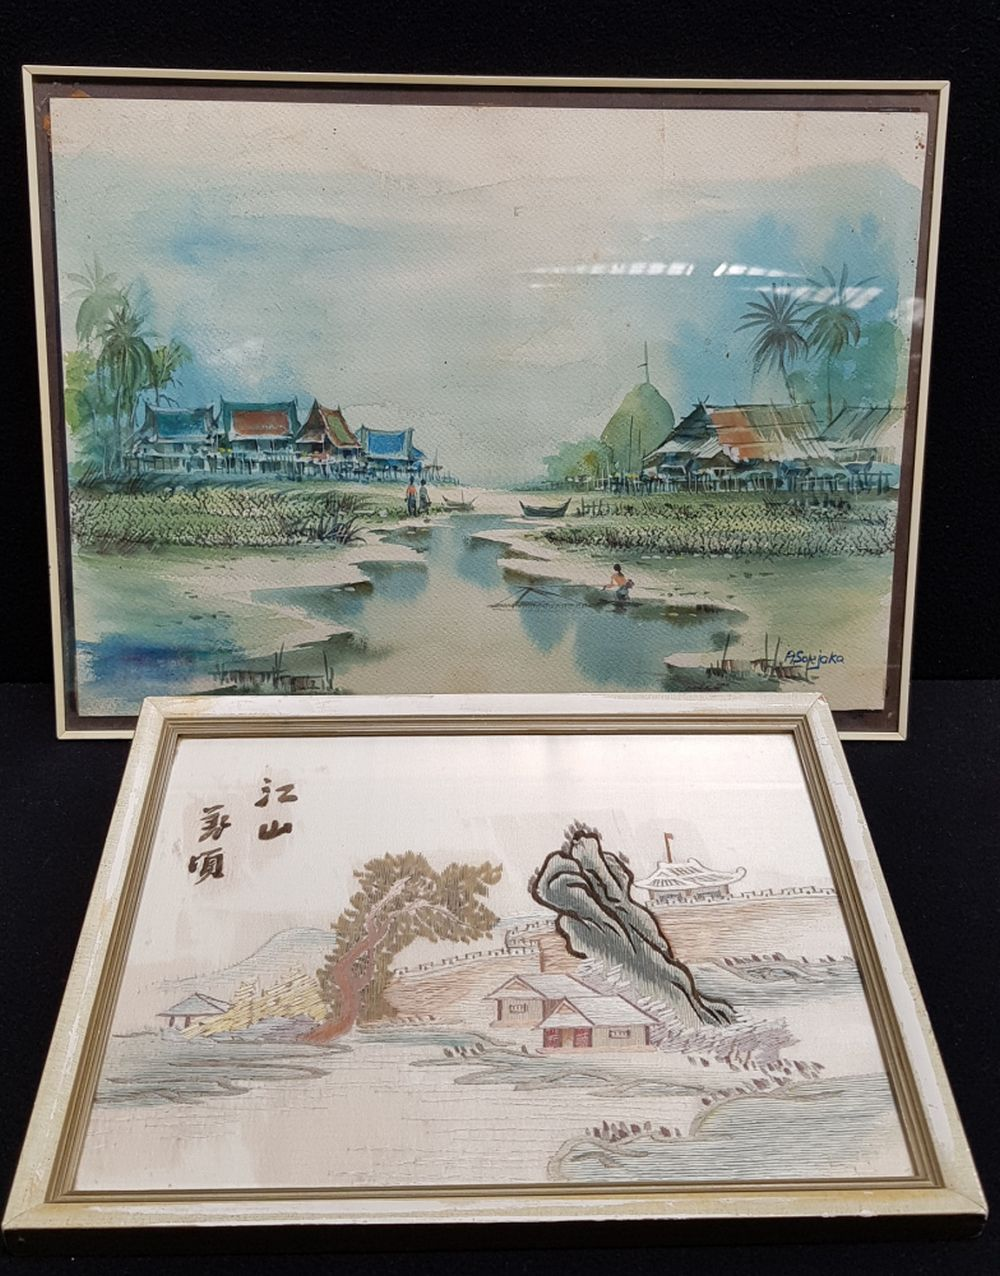 (Asian art) Two Chinese artworks